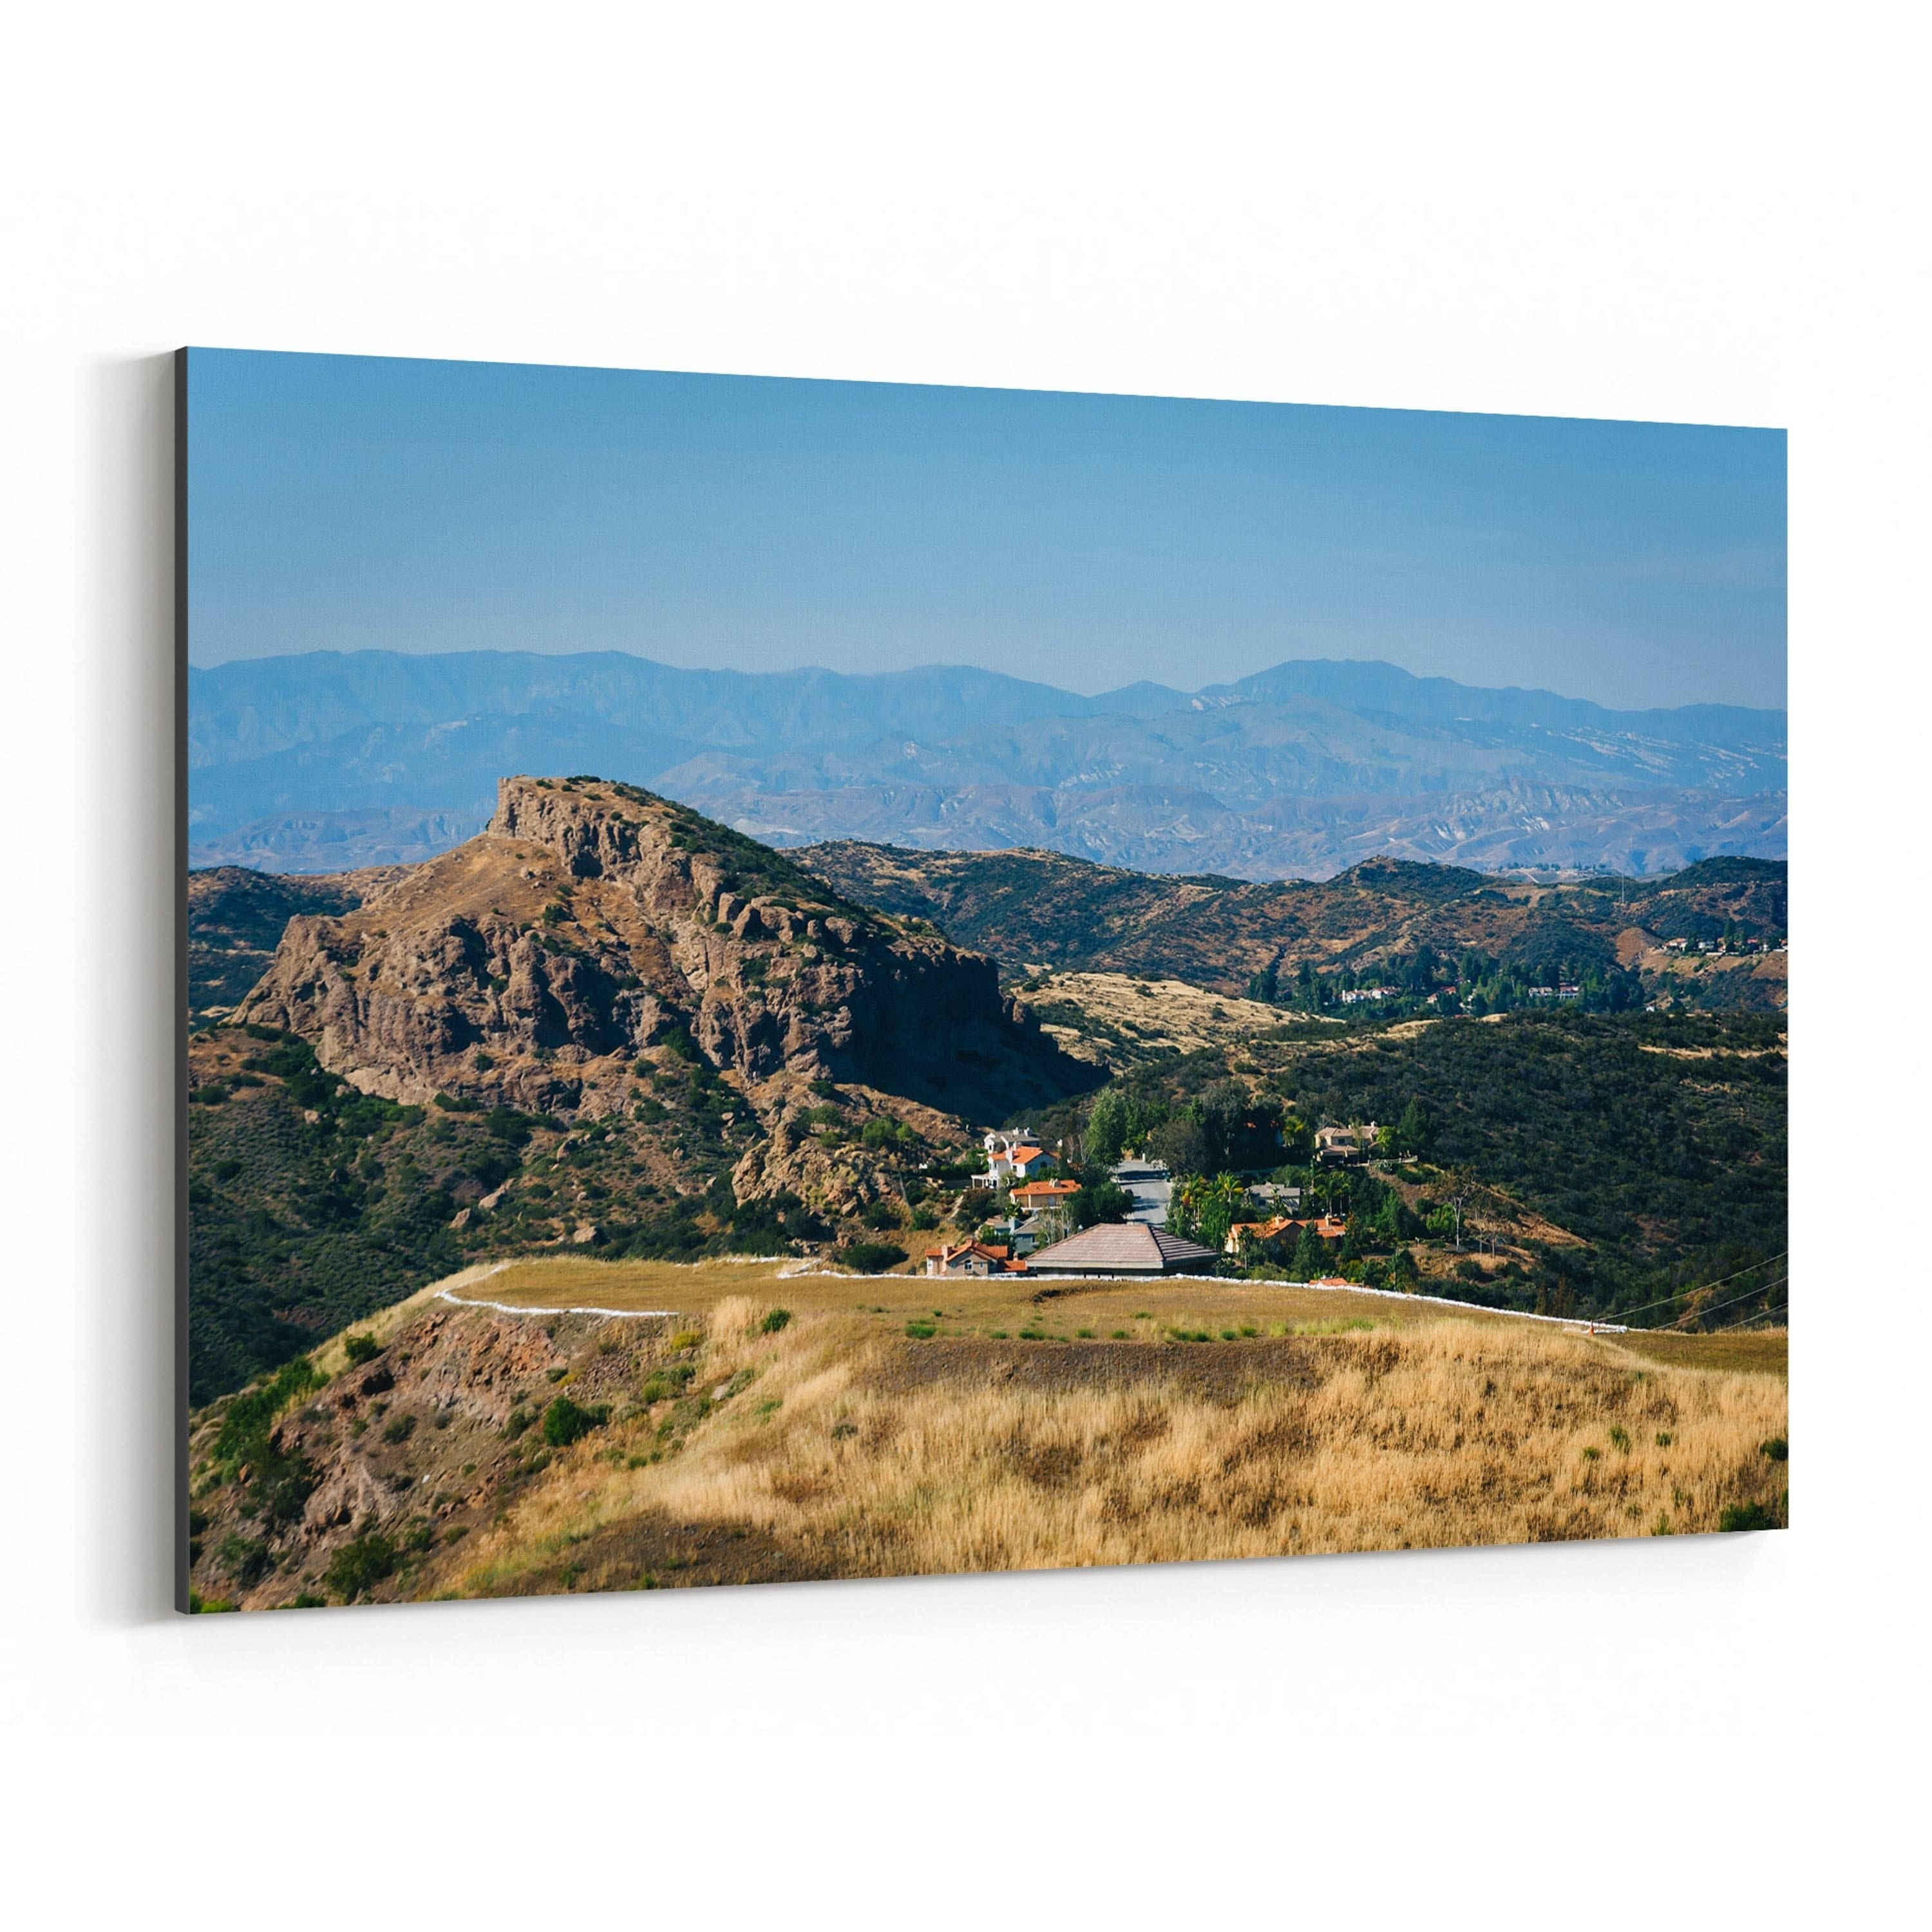 Buy Gallery Wrapped Canvas Online At Overstock